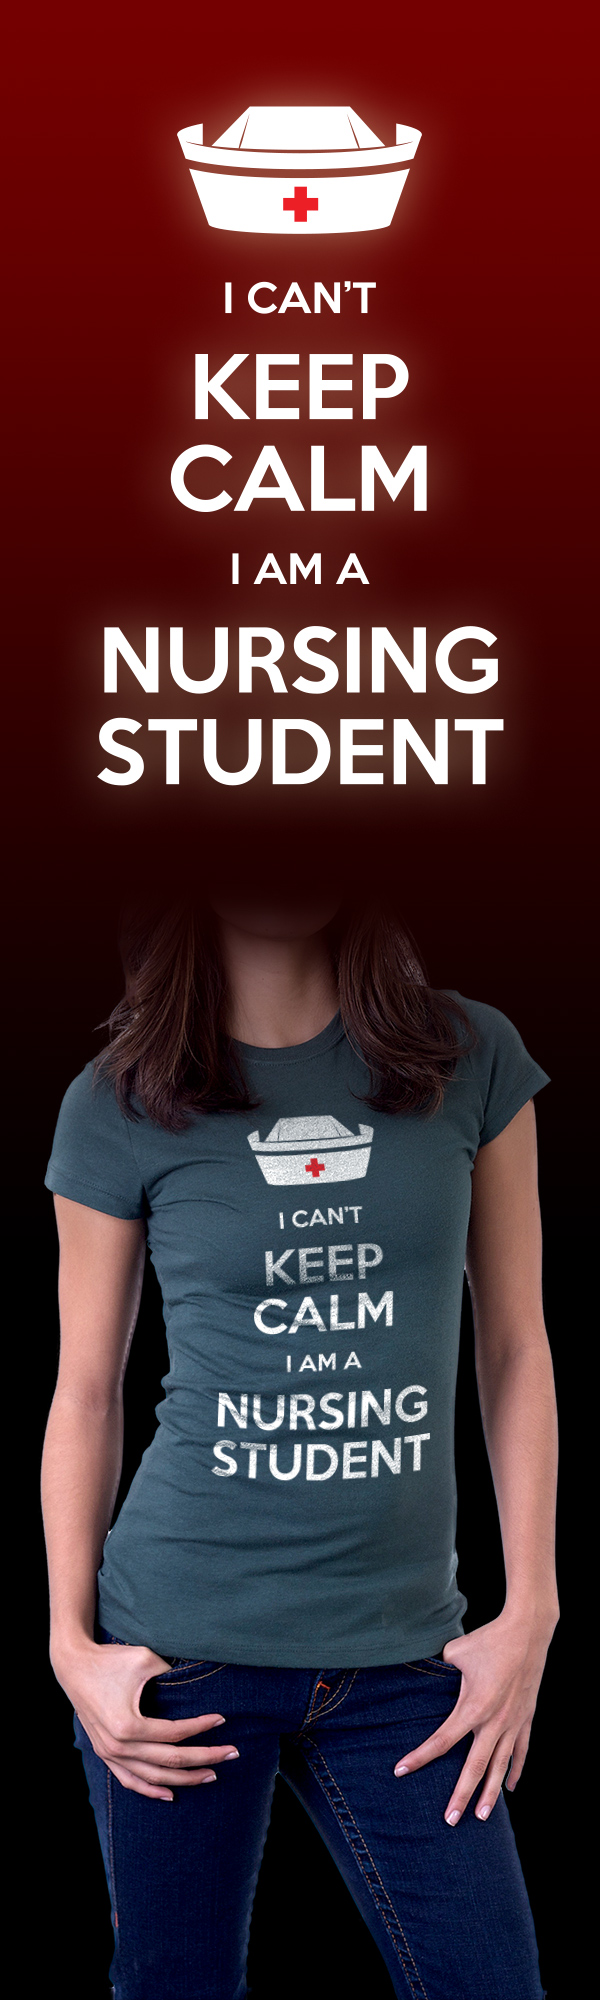 New T-shirt collection for Nurses from Teedle. Check this out!